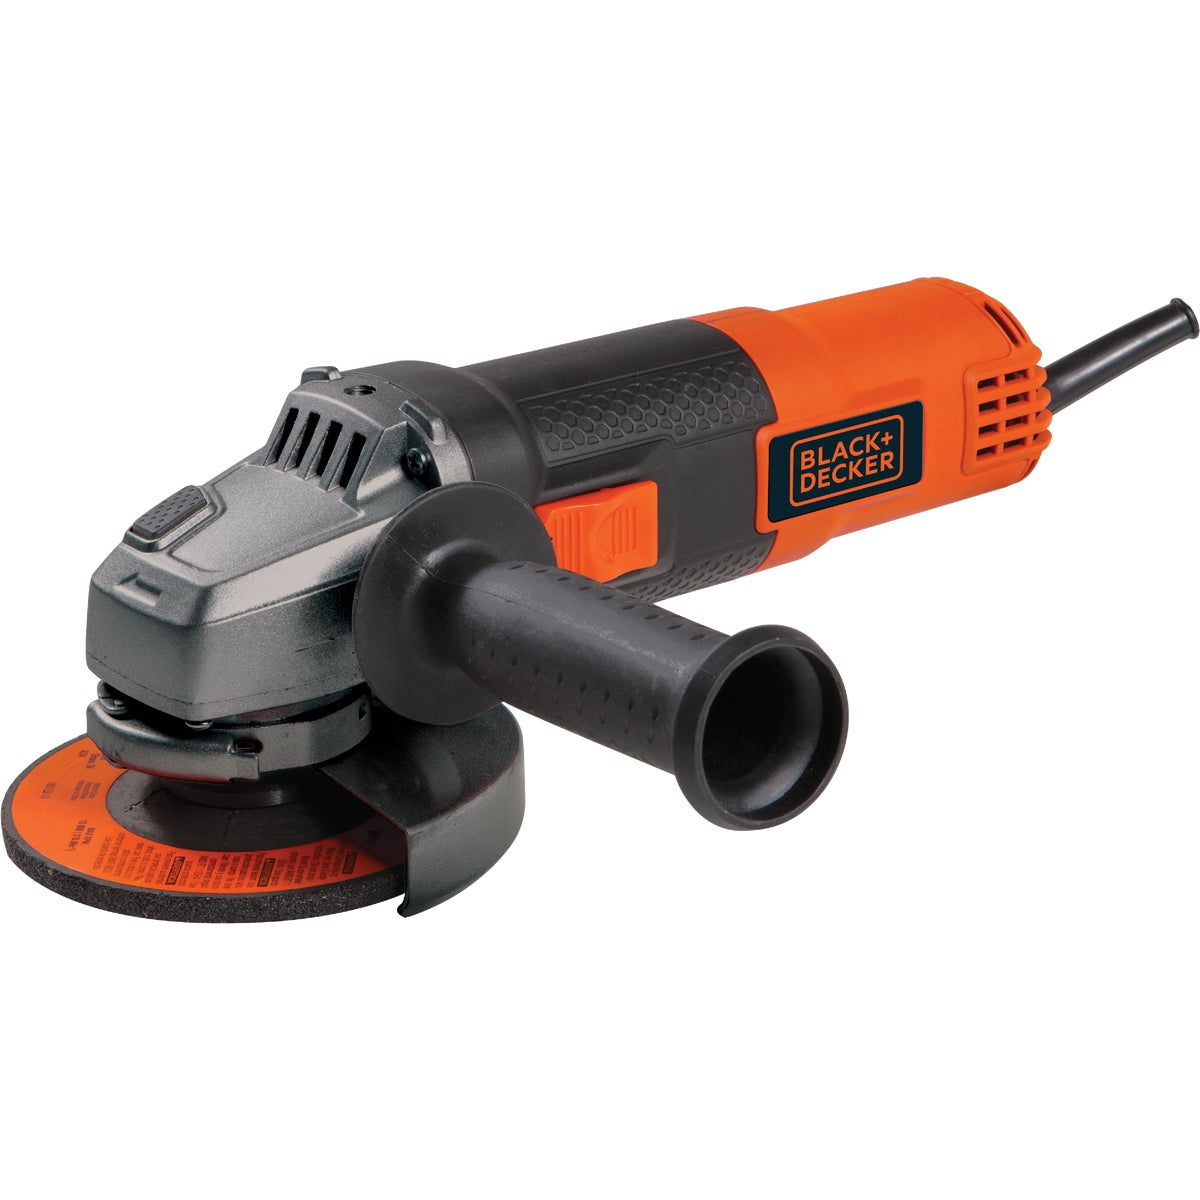 4-1/2 5.5A ANGLE GRINDER - 7750 by Black & Decker